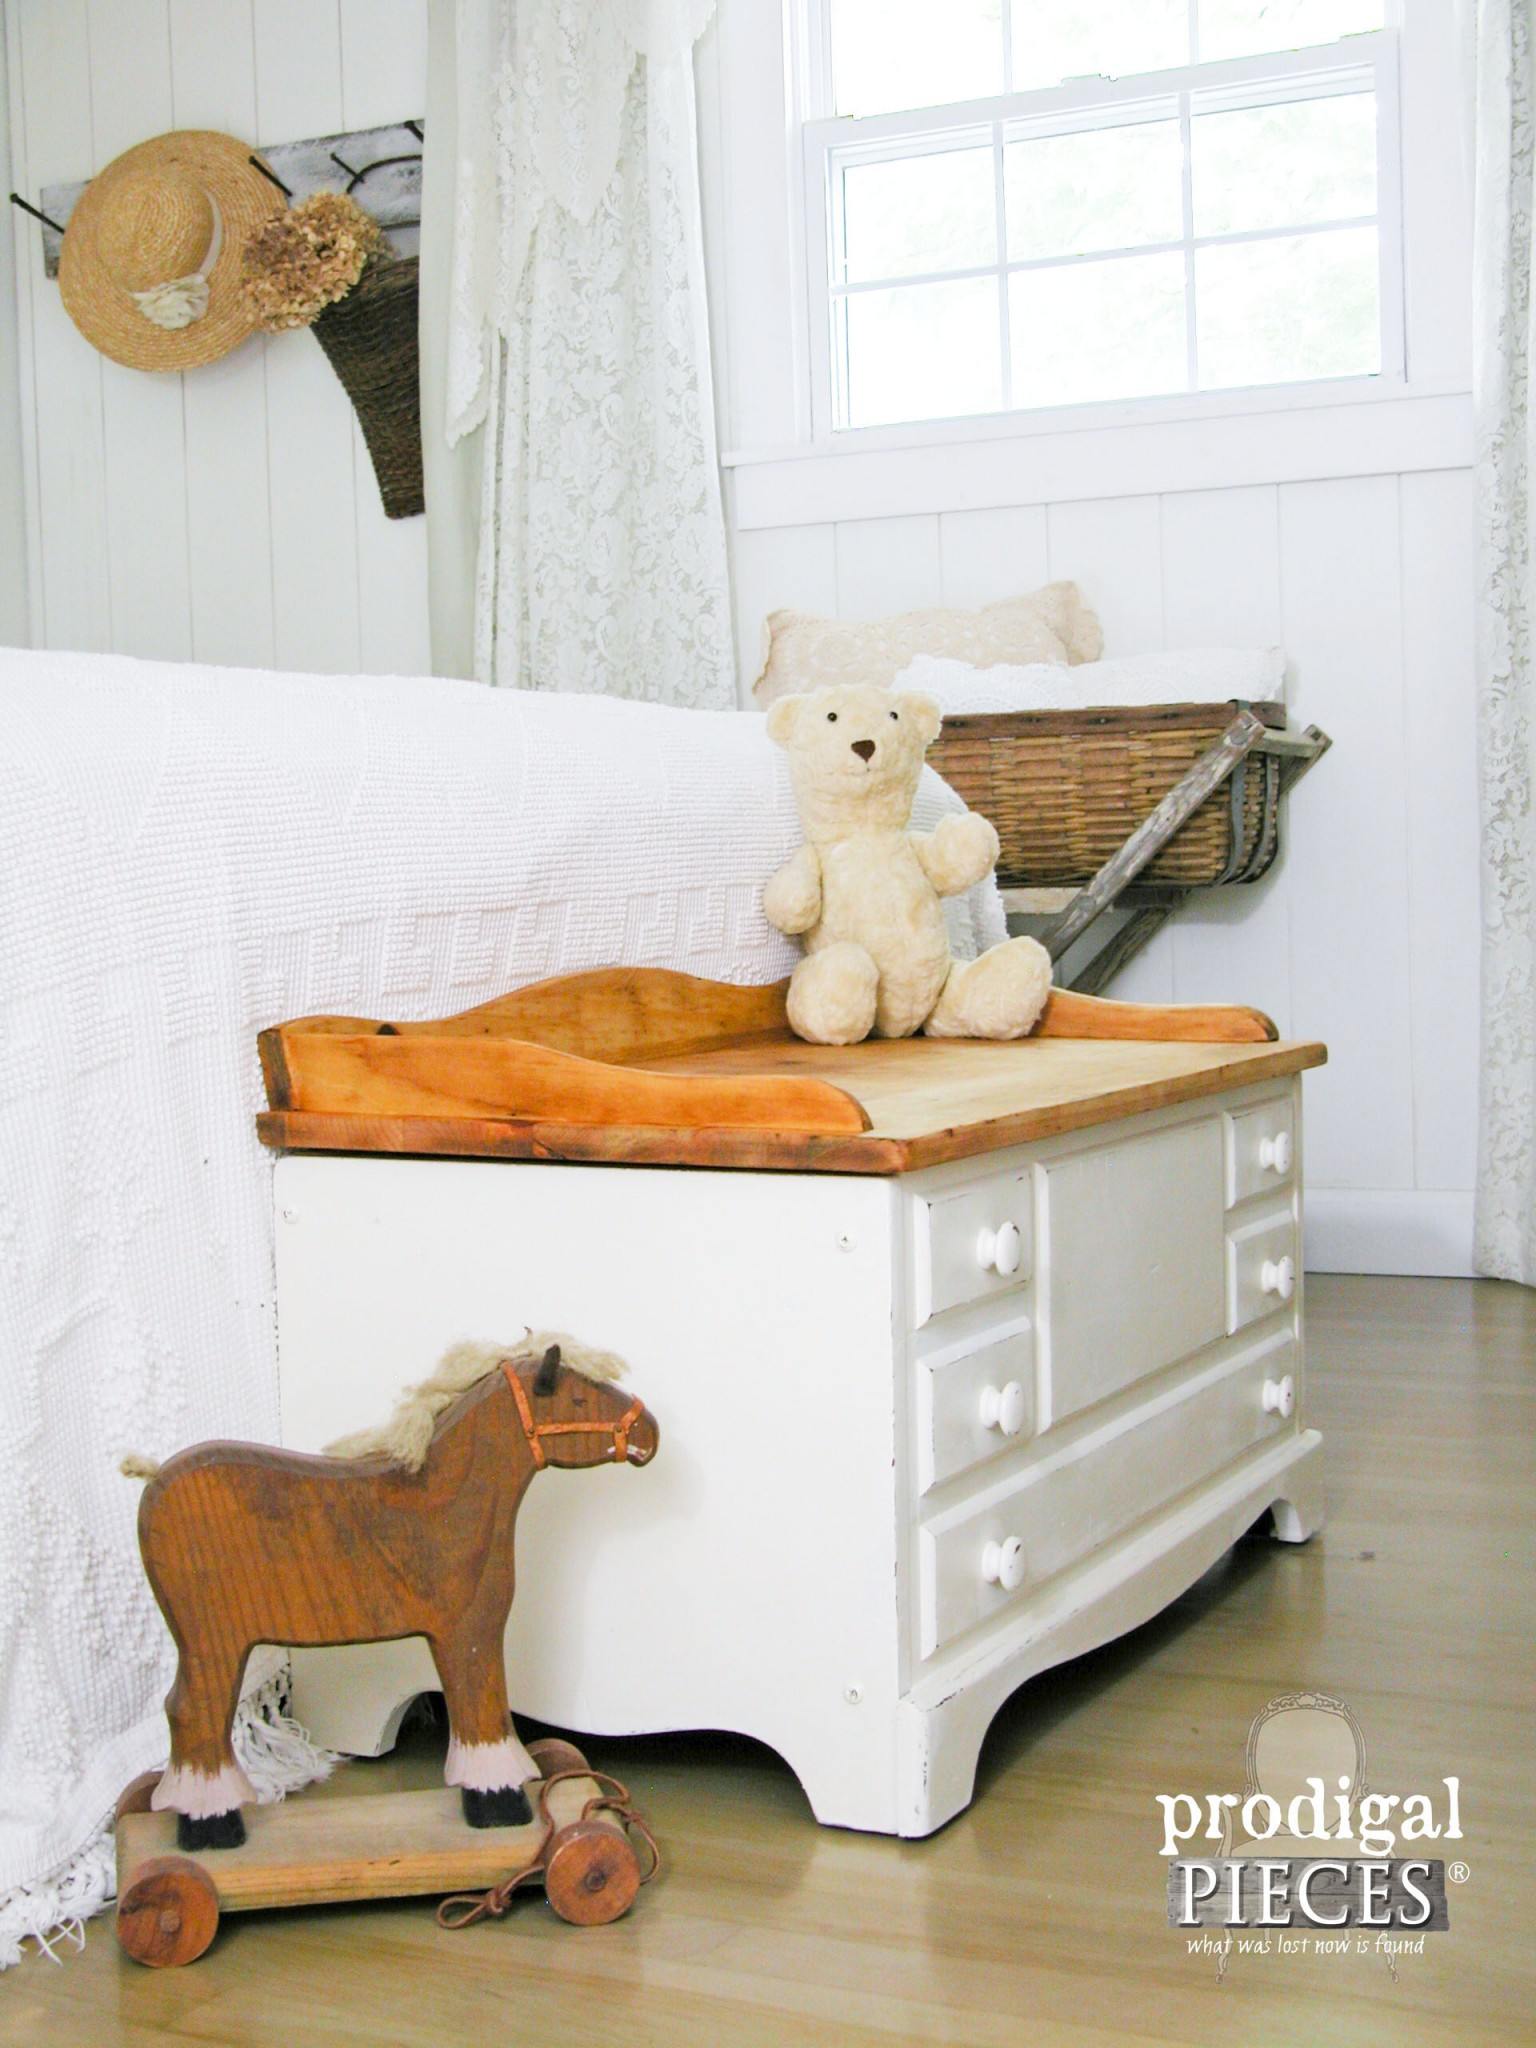 Farmhouse Chic Child's Wooden Chest by Prodigal Pieces | www.prodigalpieces.com